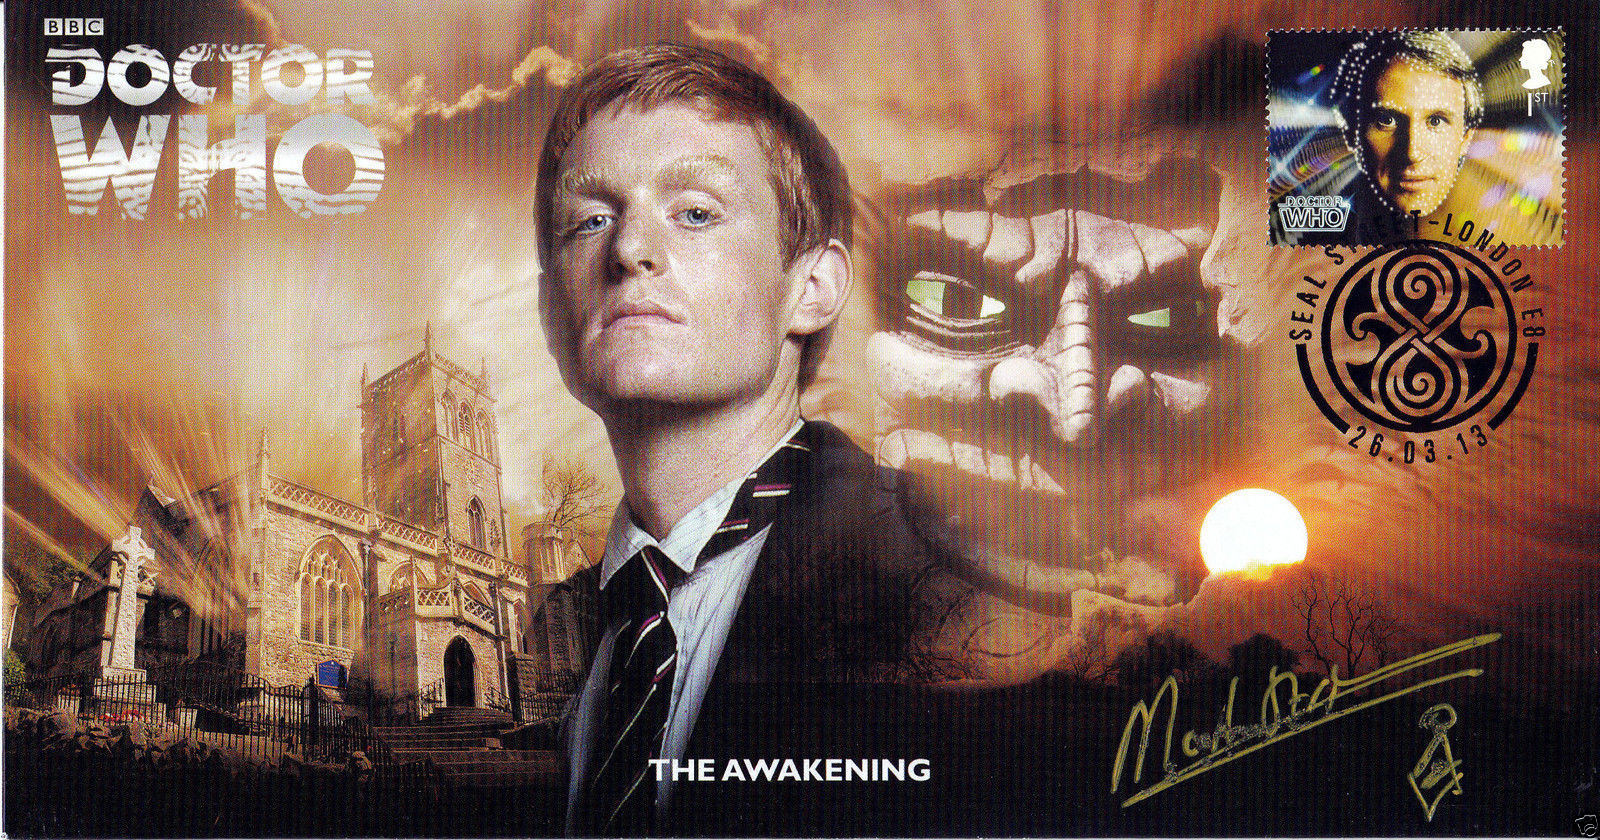 Doctor Who The Awakening Classic Episode Stamp Cover Signed MARK STRICKSON